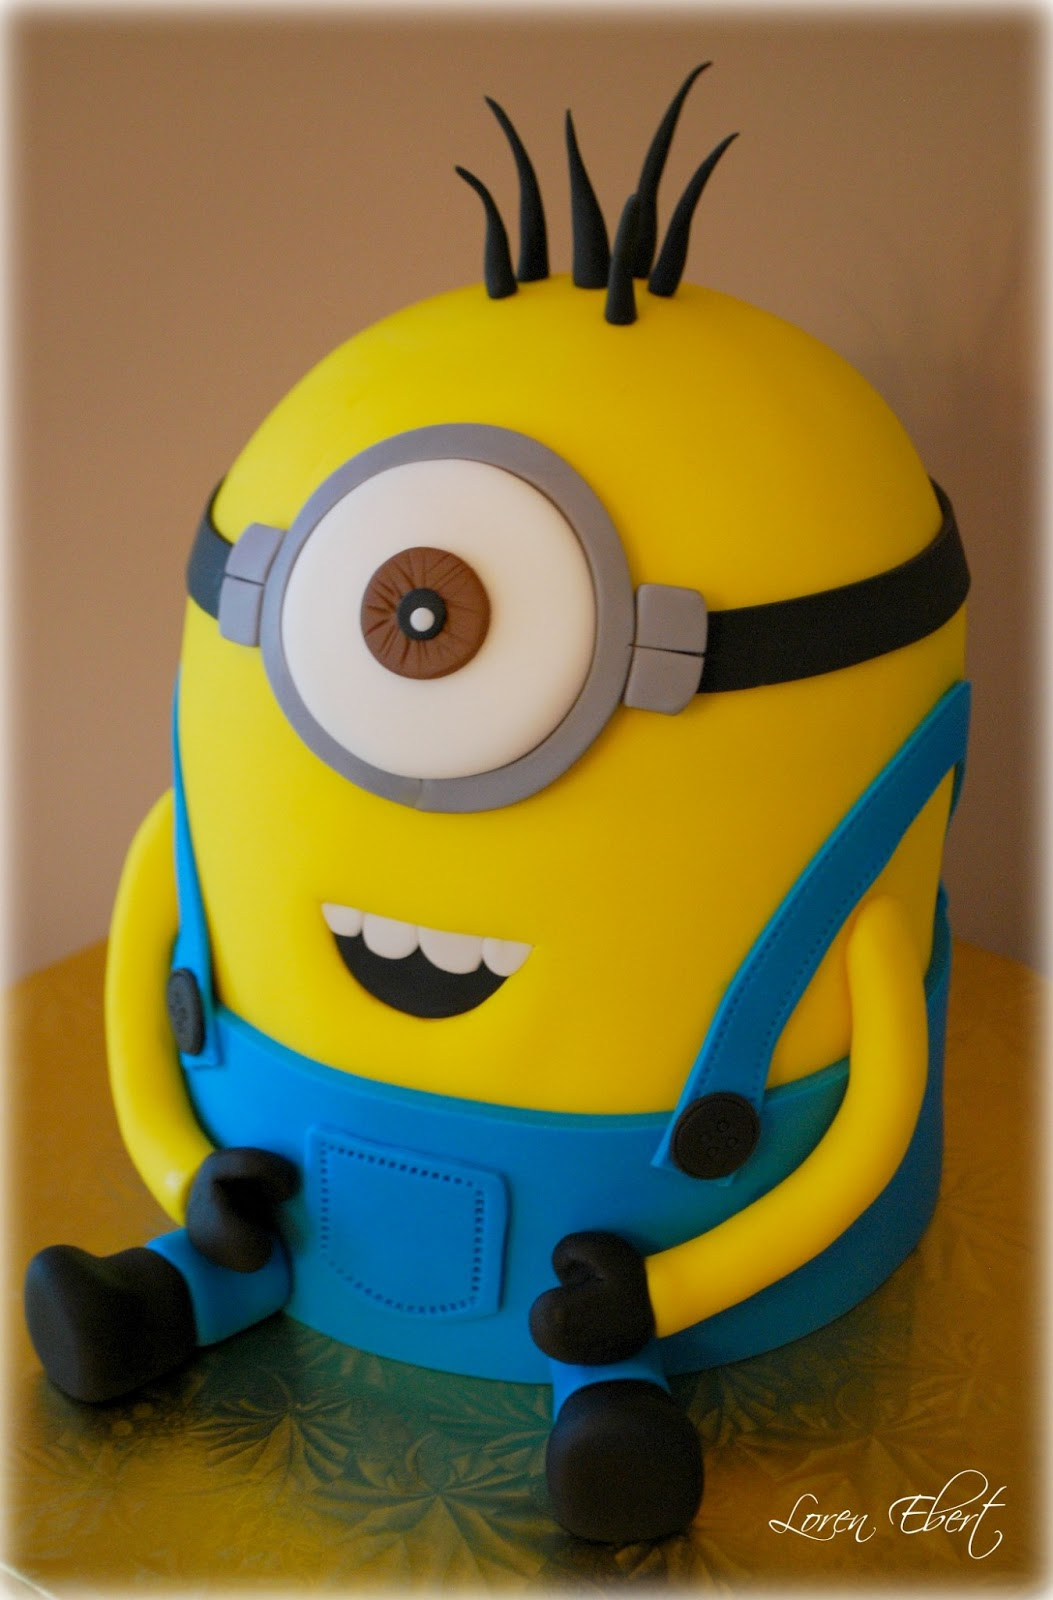 Despicable Me Cake By Loren Ebert Cakejournal Com